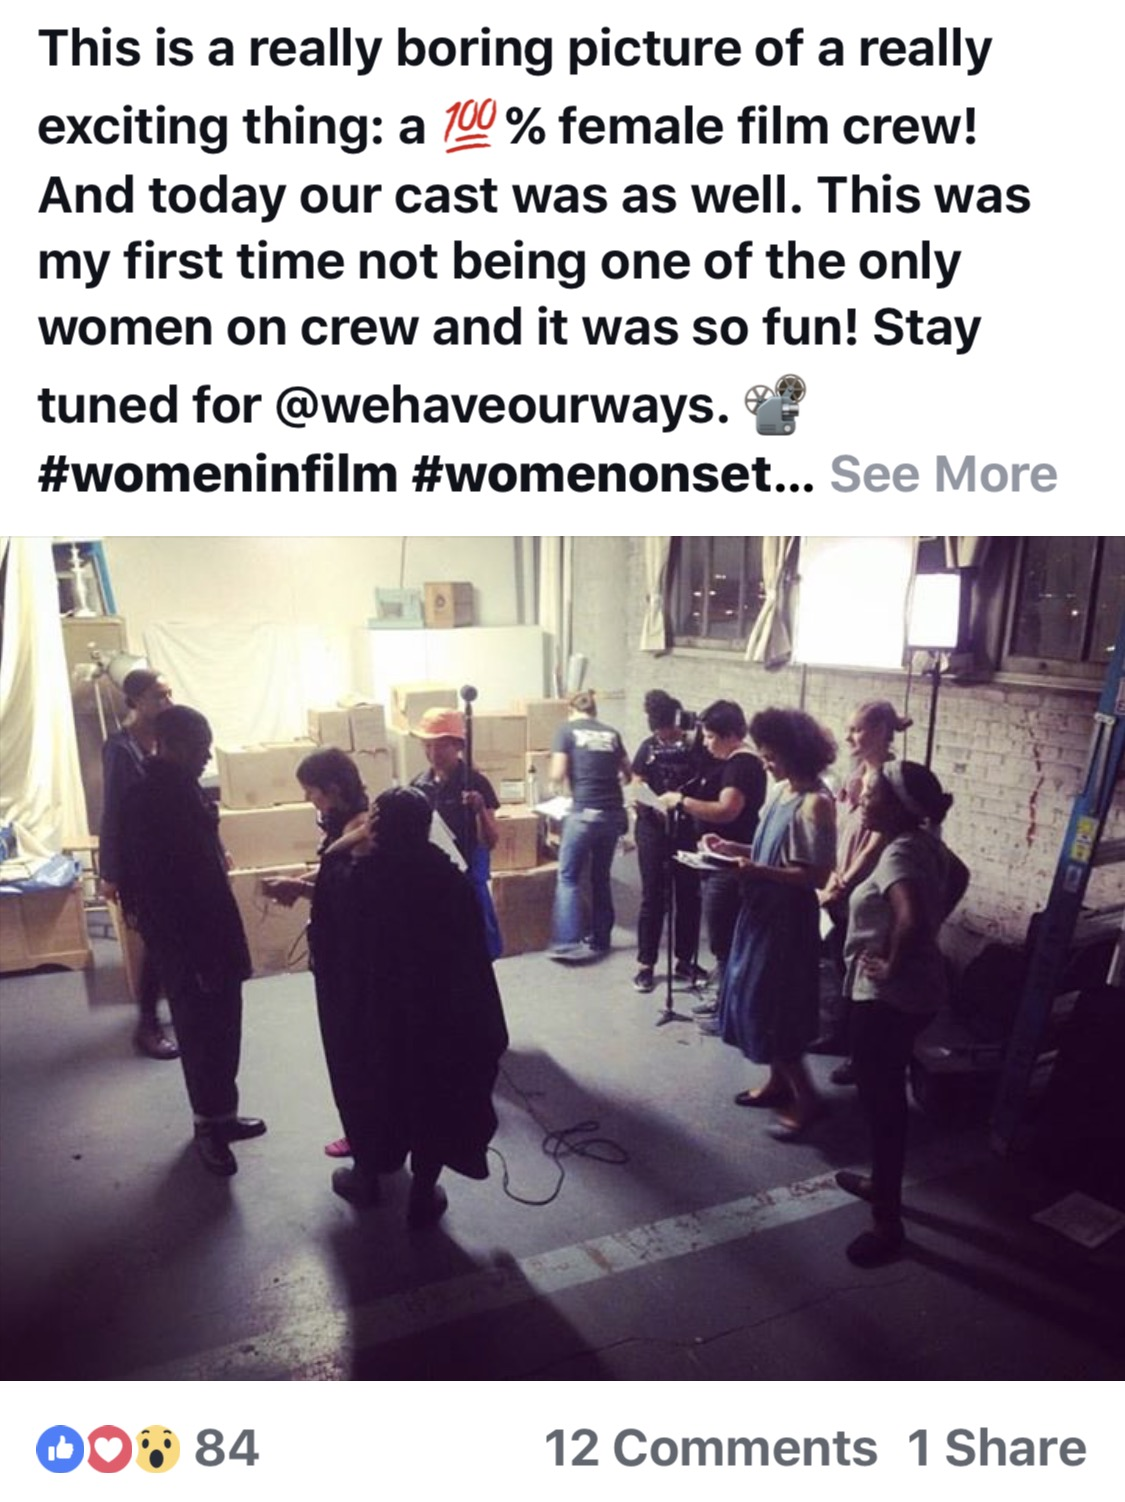 Picture & post by Darcy Sharpe/ Production Designer